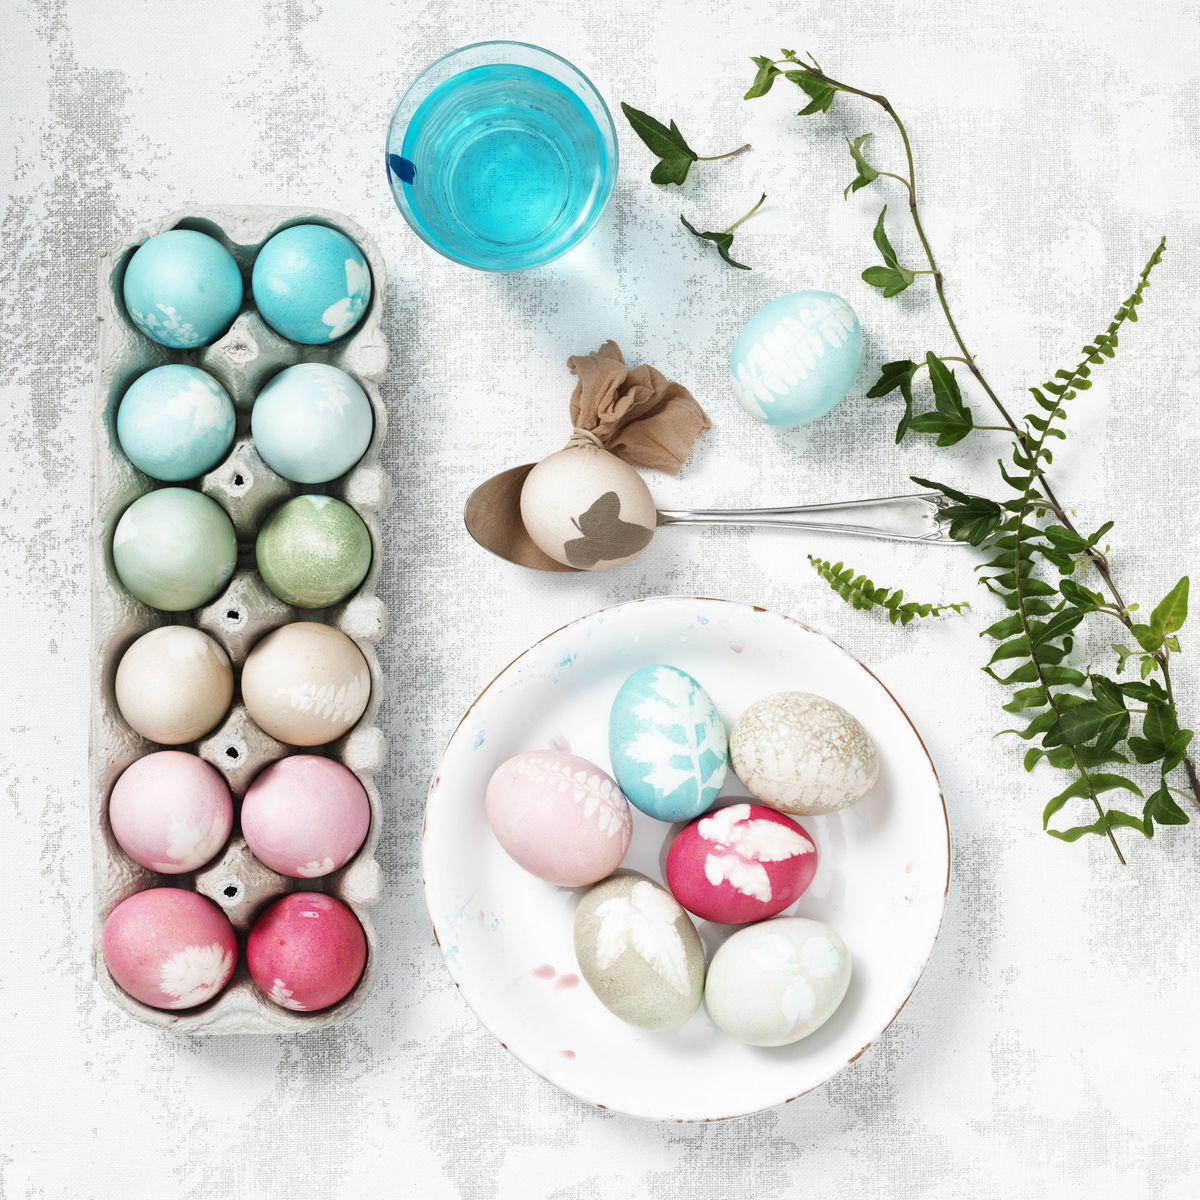 Dye eggs with designs from nature